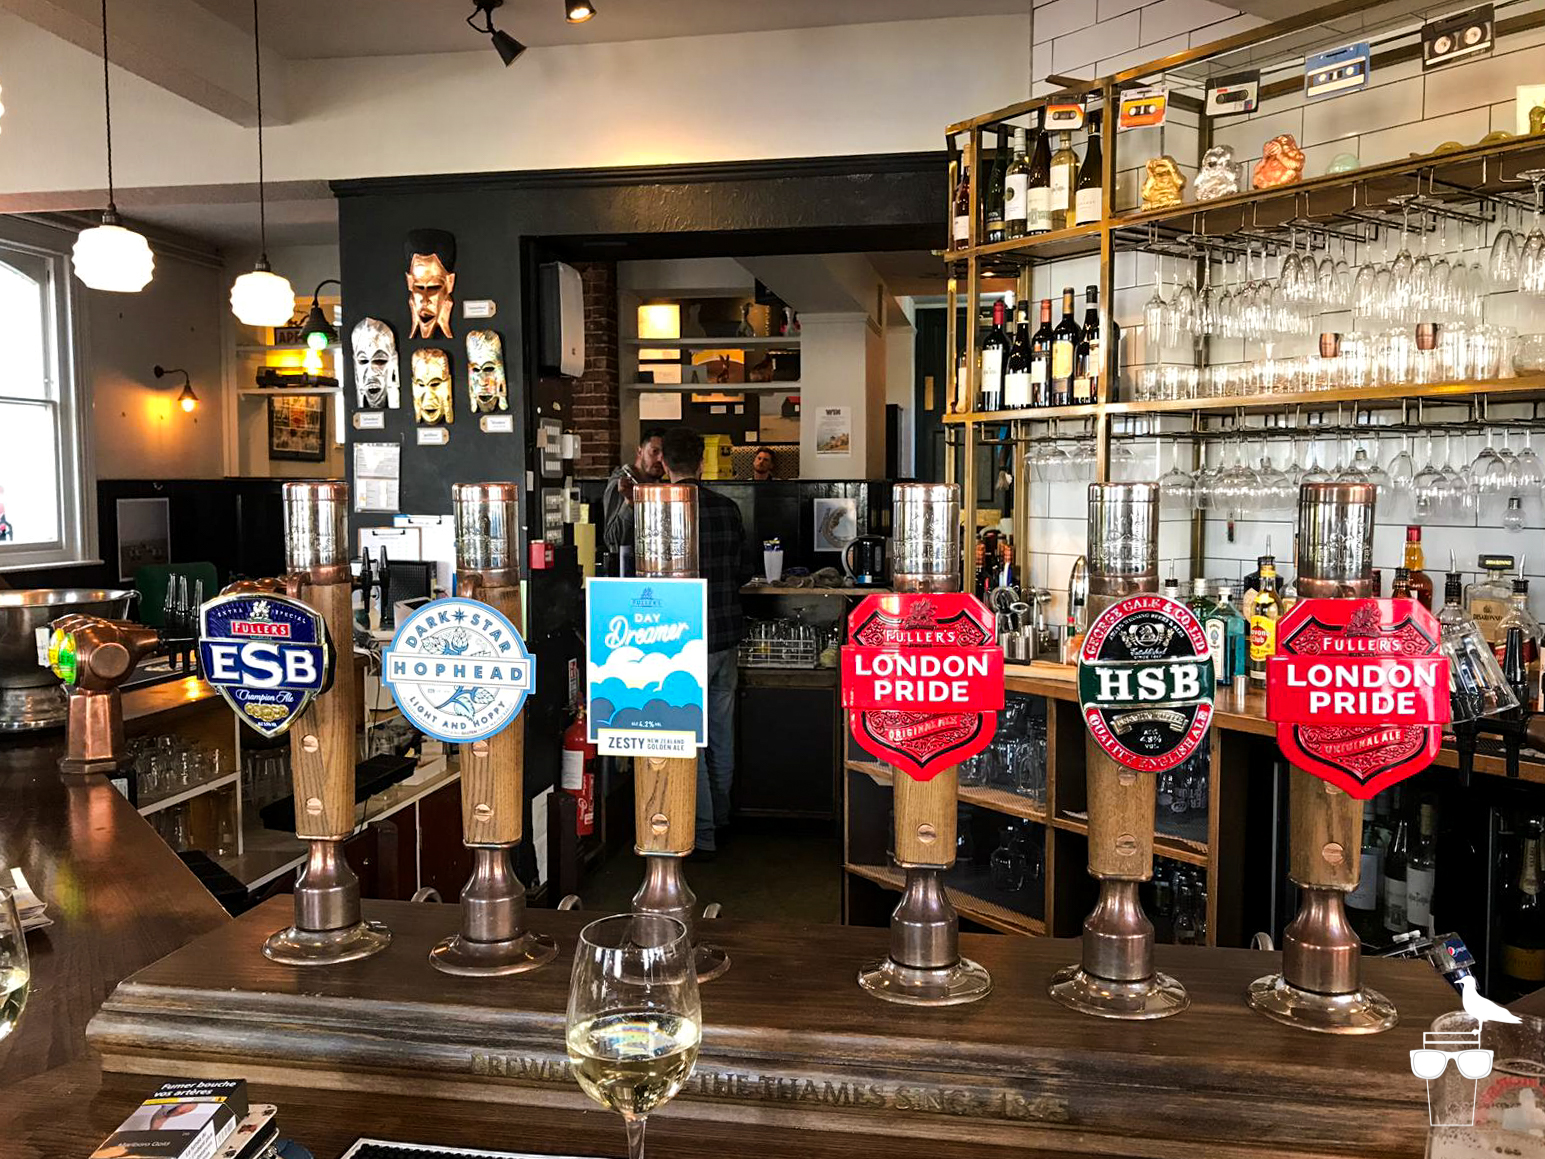 Prestonville Arms 16 May 2019-9